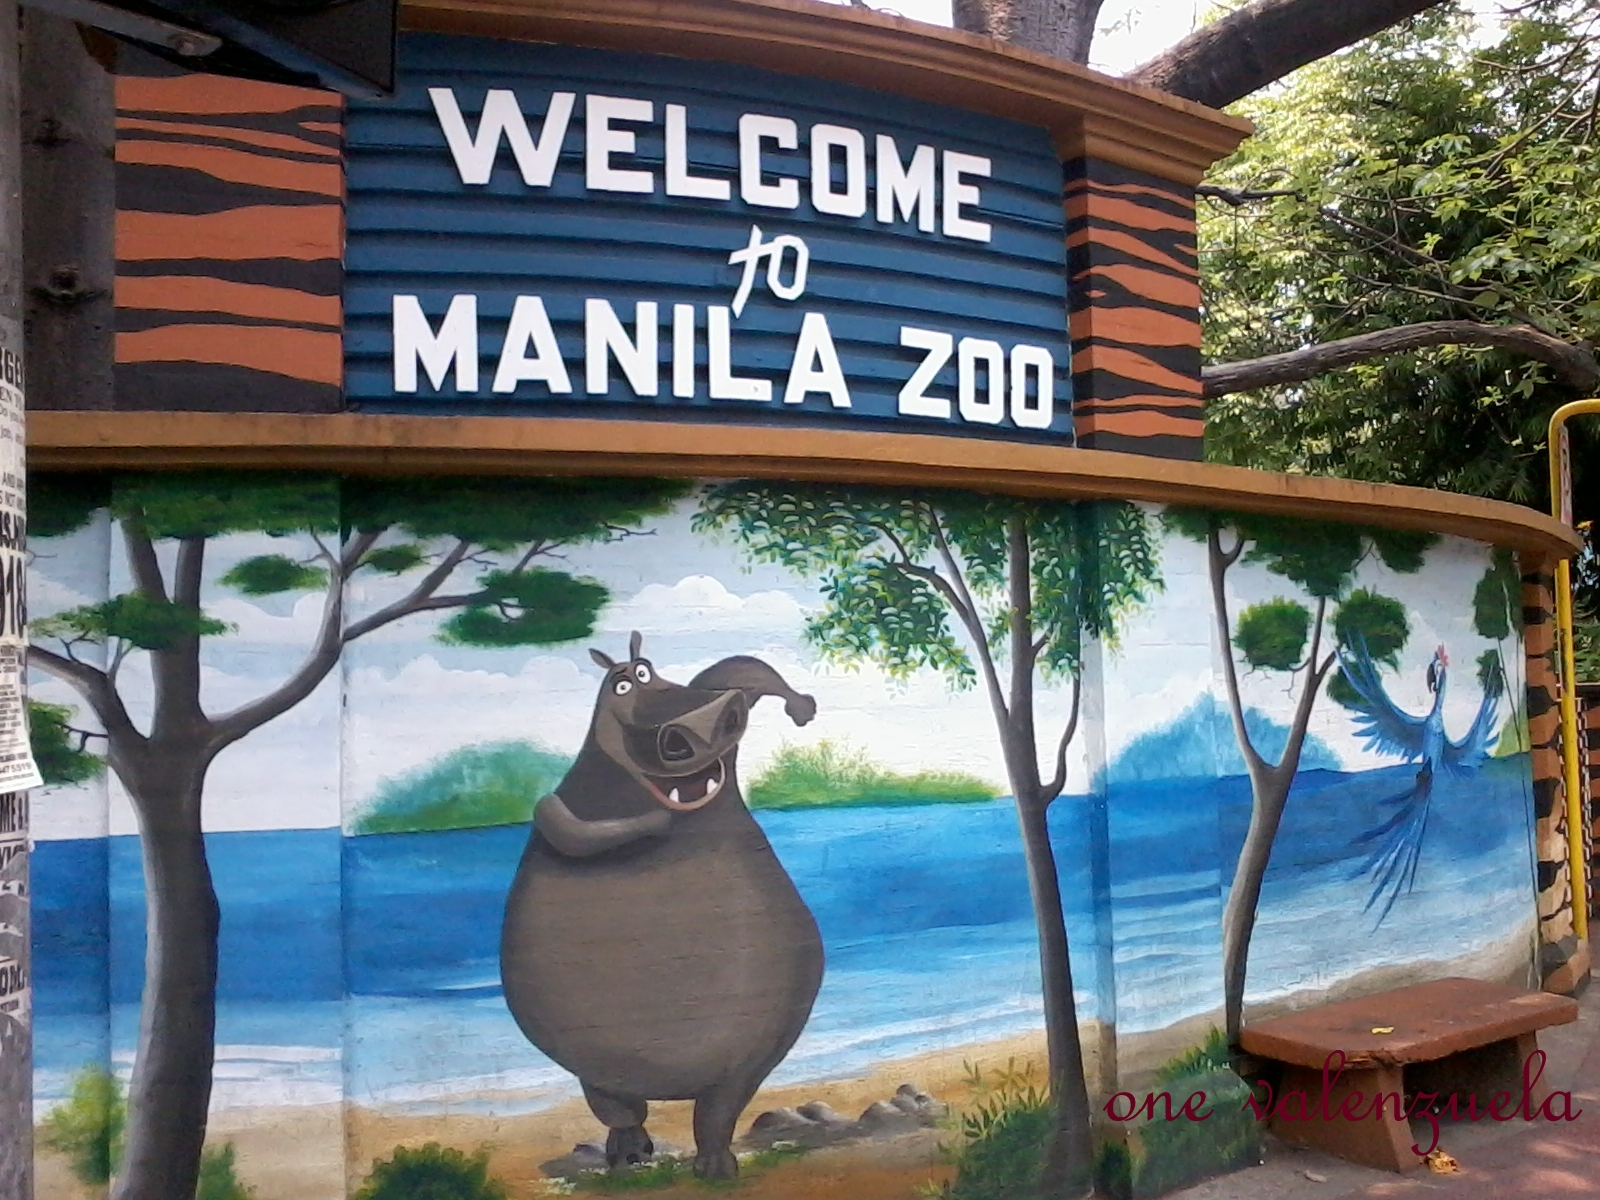 the plight of manila zoos elephant By raising awareness of the plight of as the largest habitat in the history of the la zoo, elephants of we invite you to visit your los angeles zoo today to.